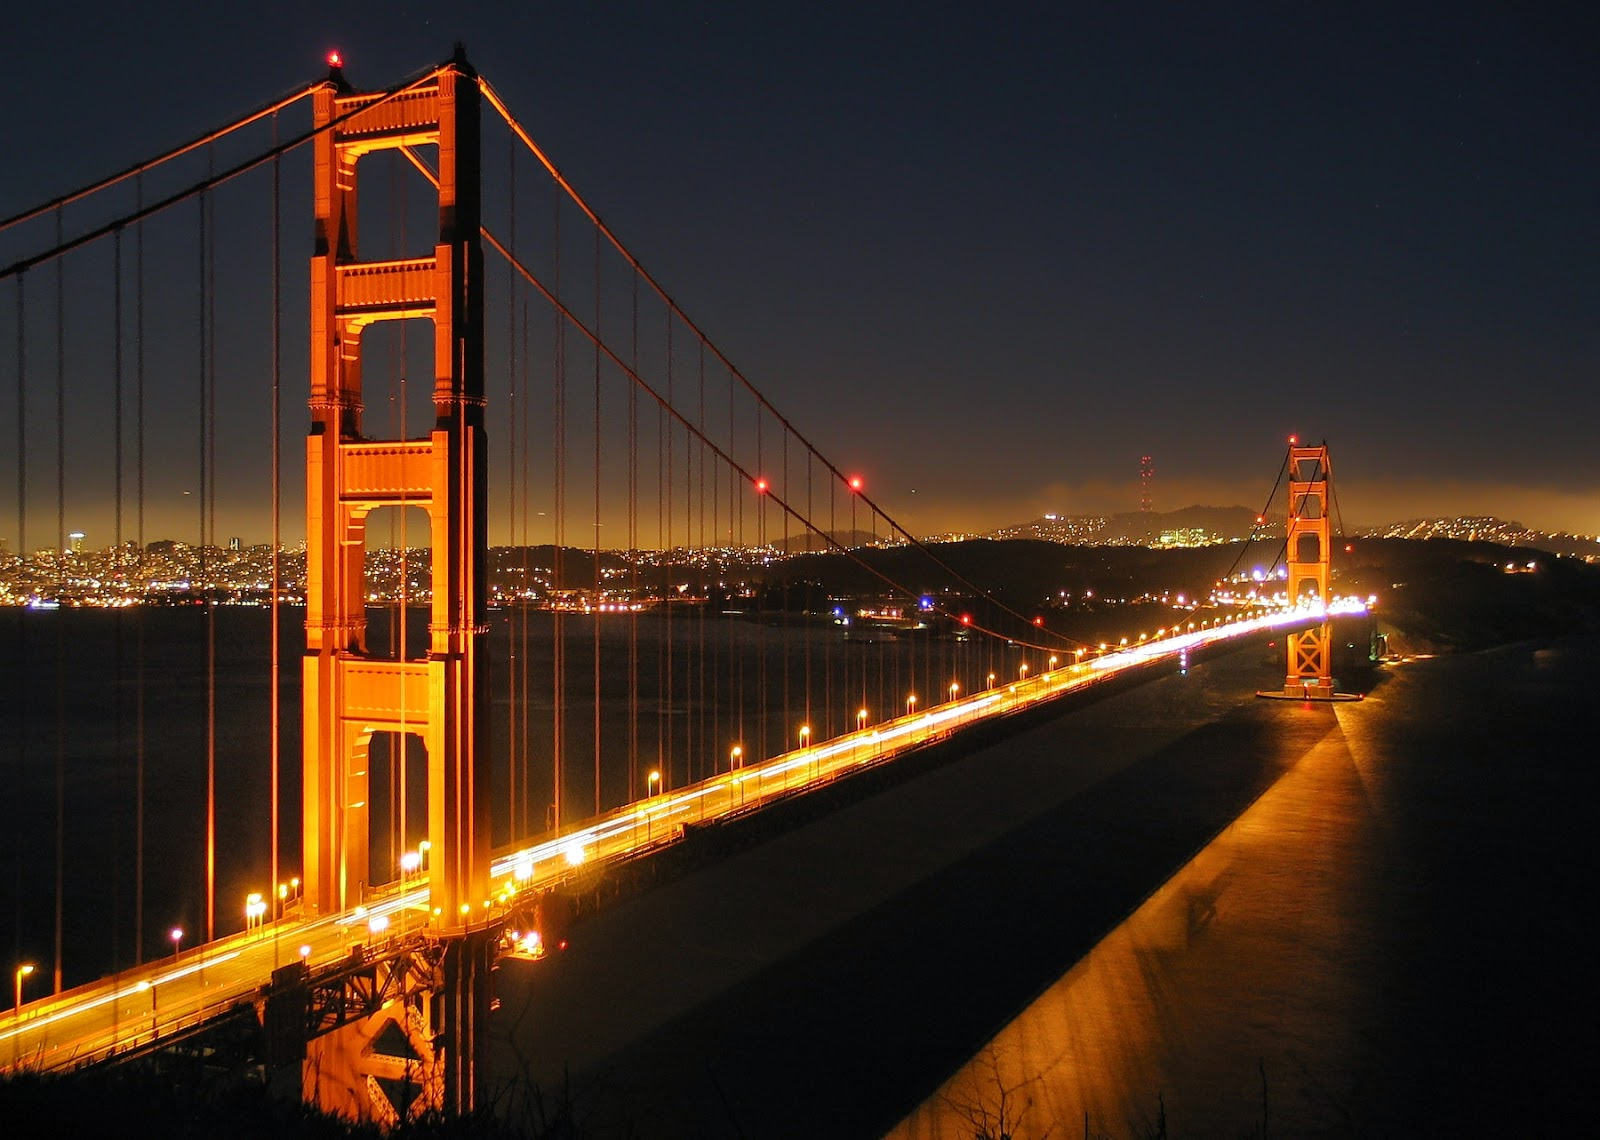 Golden Gate Bridge,SanFrancisco